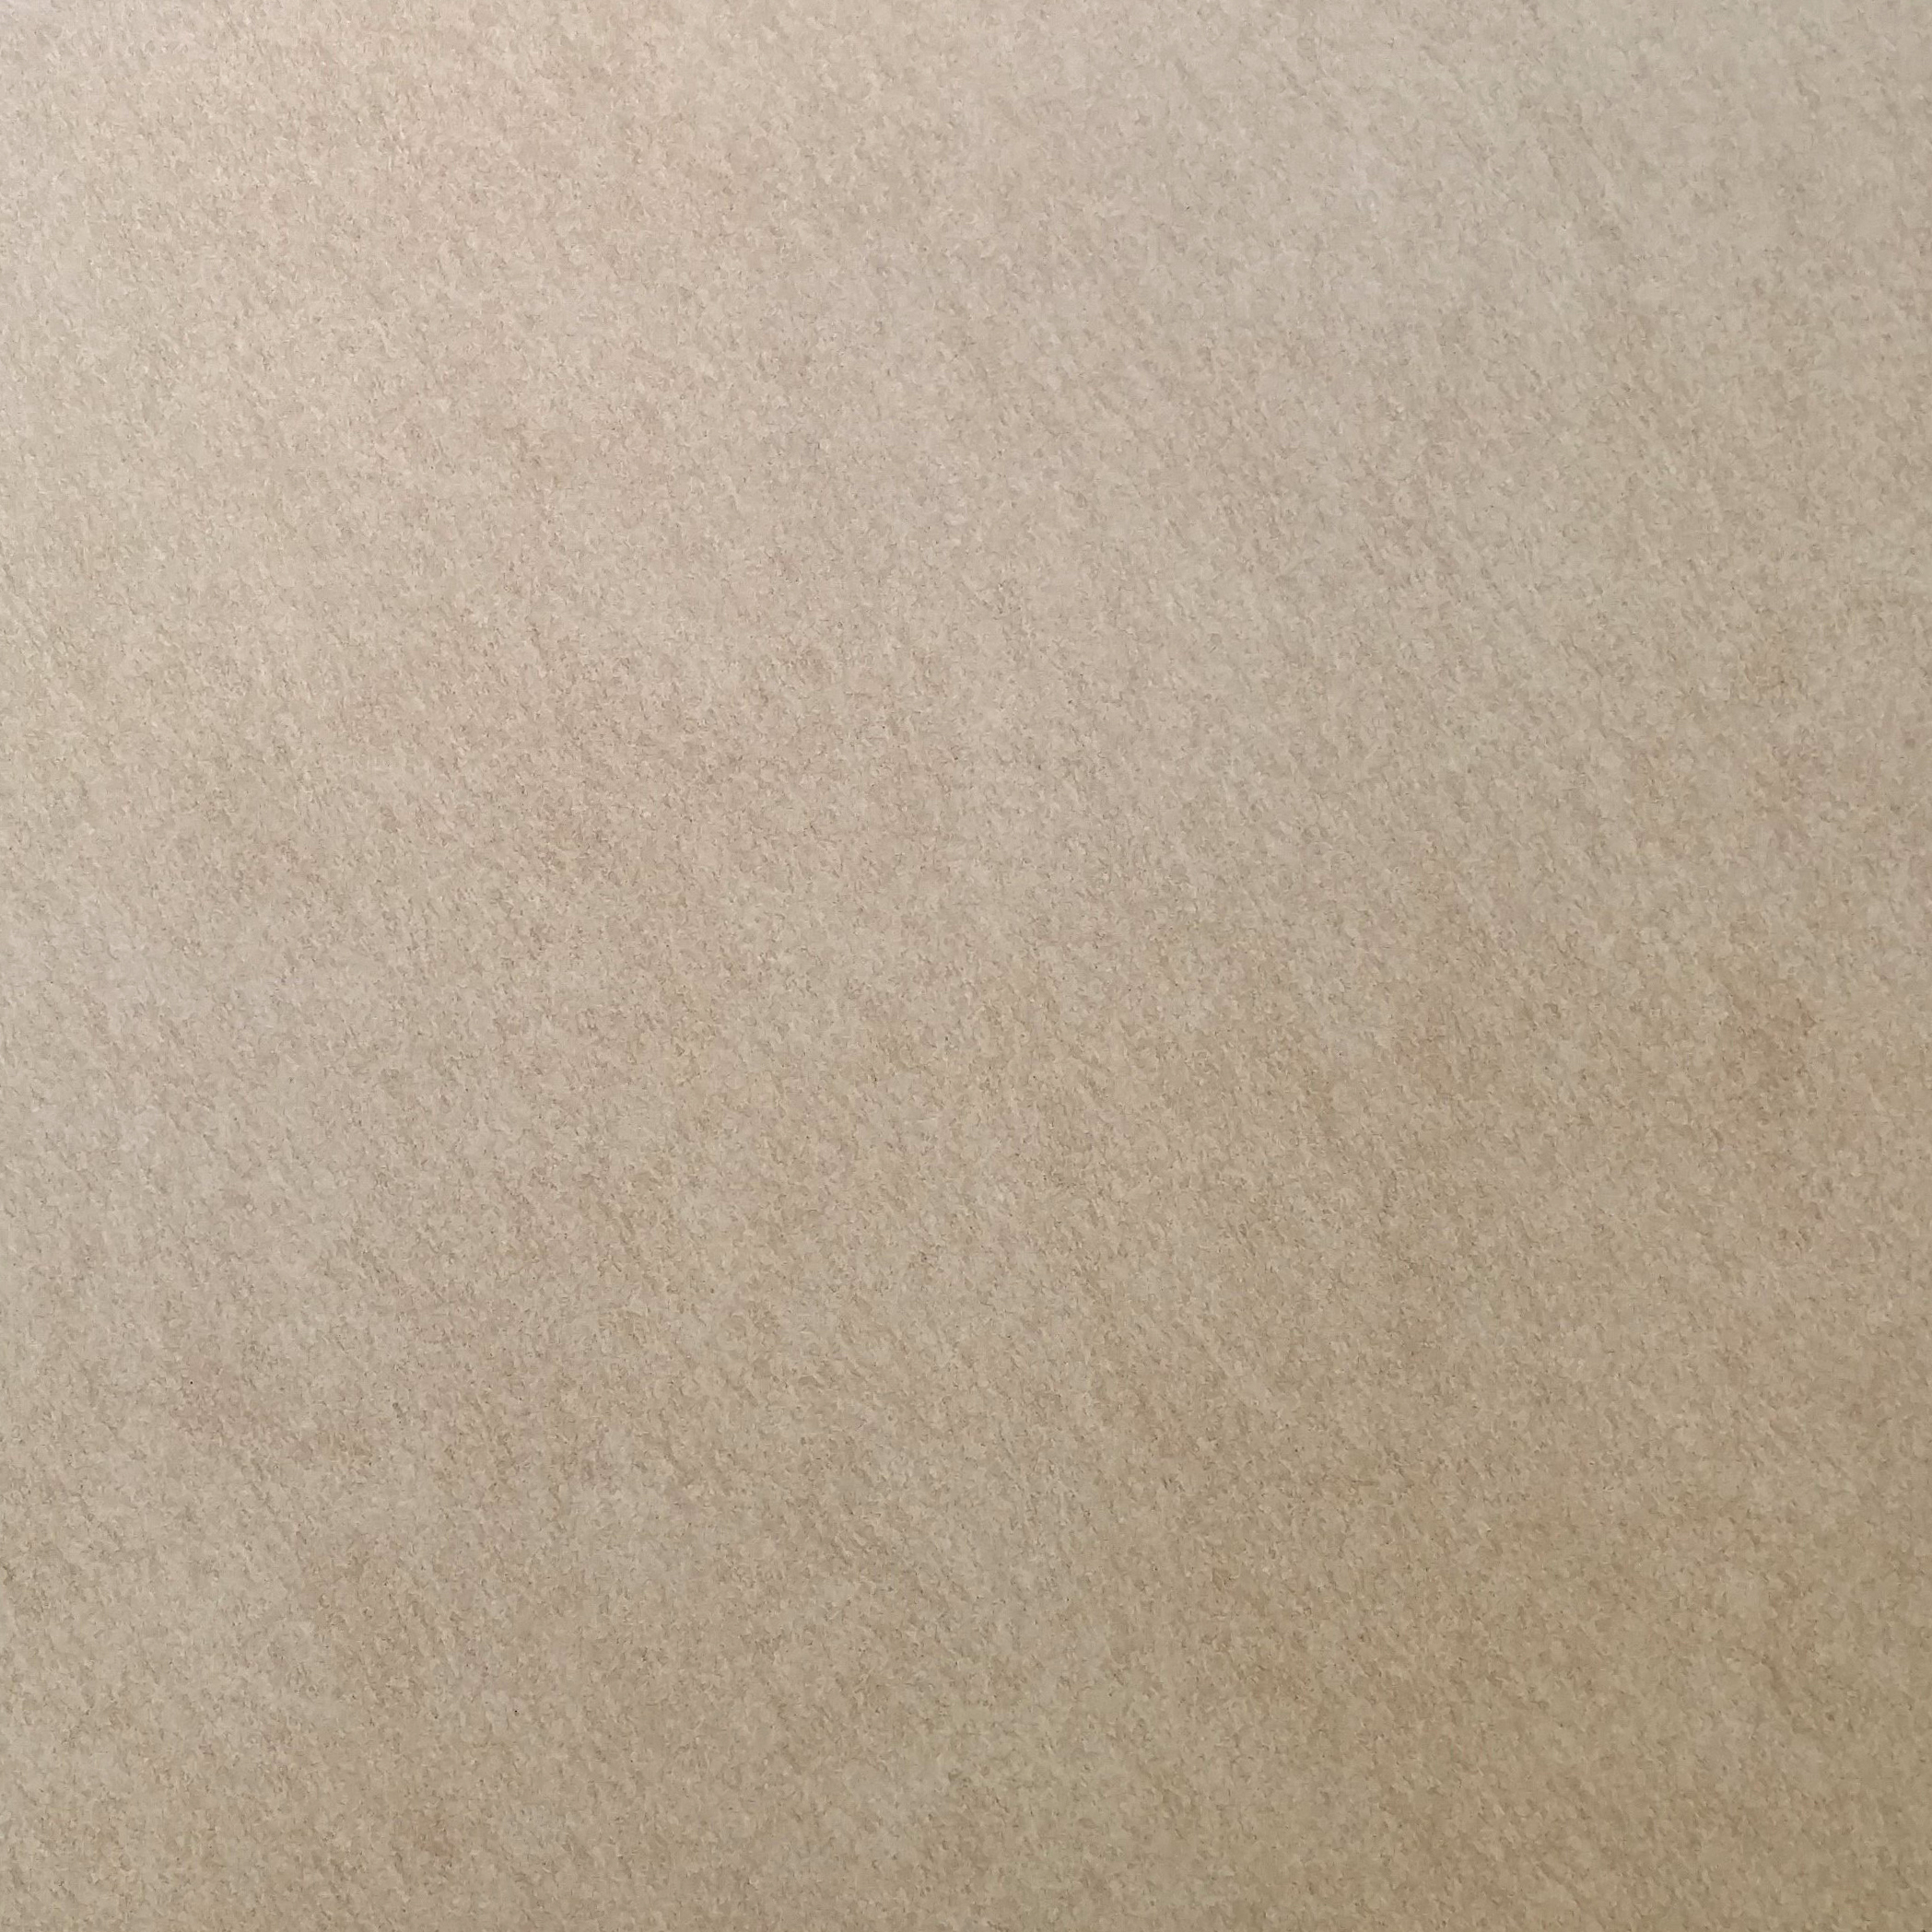 "URBAN- BEIGE 24""X24"" - GLAZED PORCELAIN   4 PC/CTN (  15.5 SF);   40 CTN/PLT"